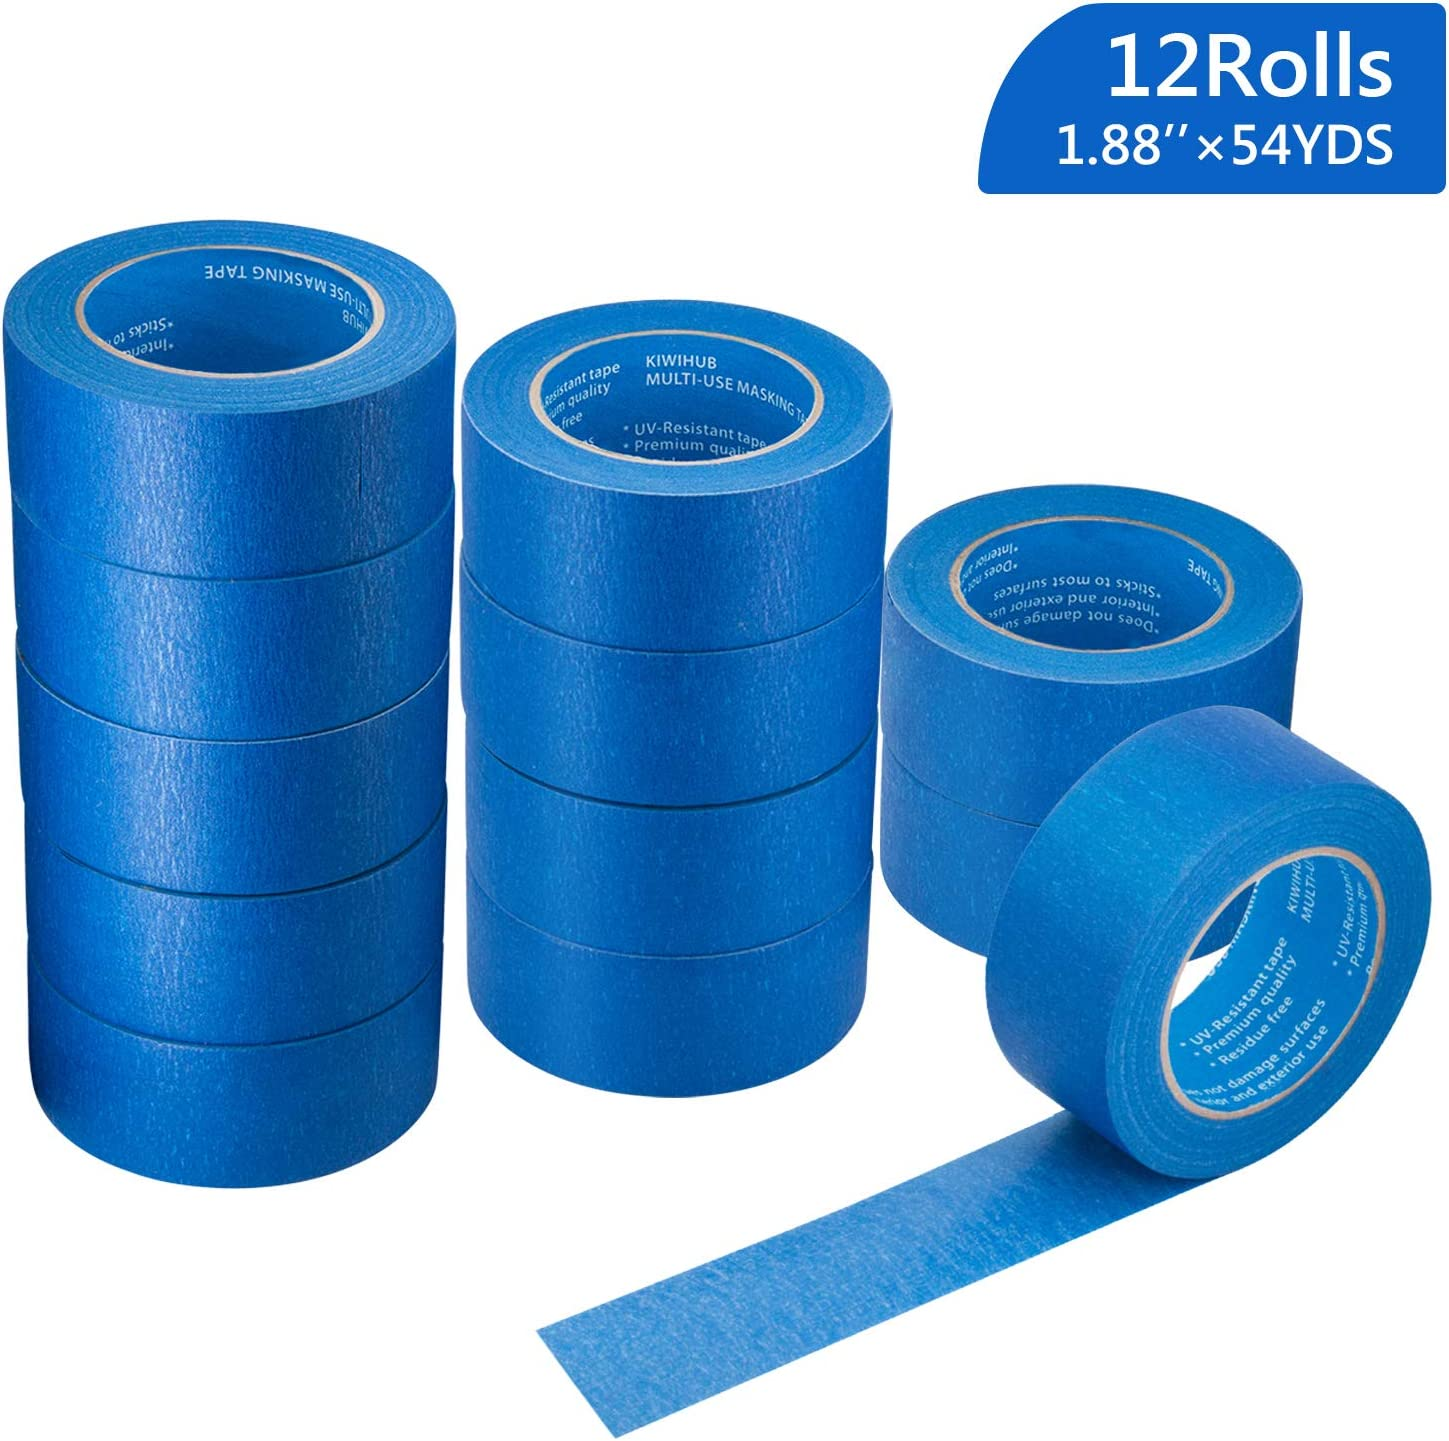 "12 Rolls 2"" (1.88 /48Mm) X 54 Yds Pro-Grade Blue Painters Tape, Medium Adhesive That Sticks Well But Leaves No Residue Behind By Kiwihub"